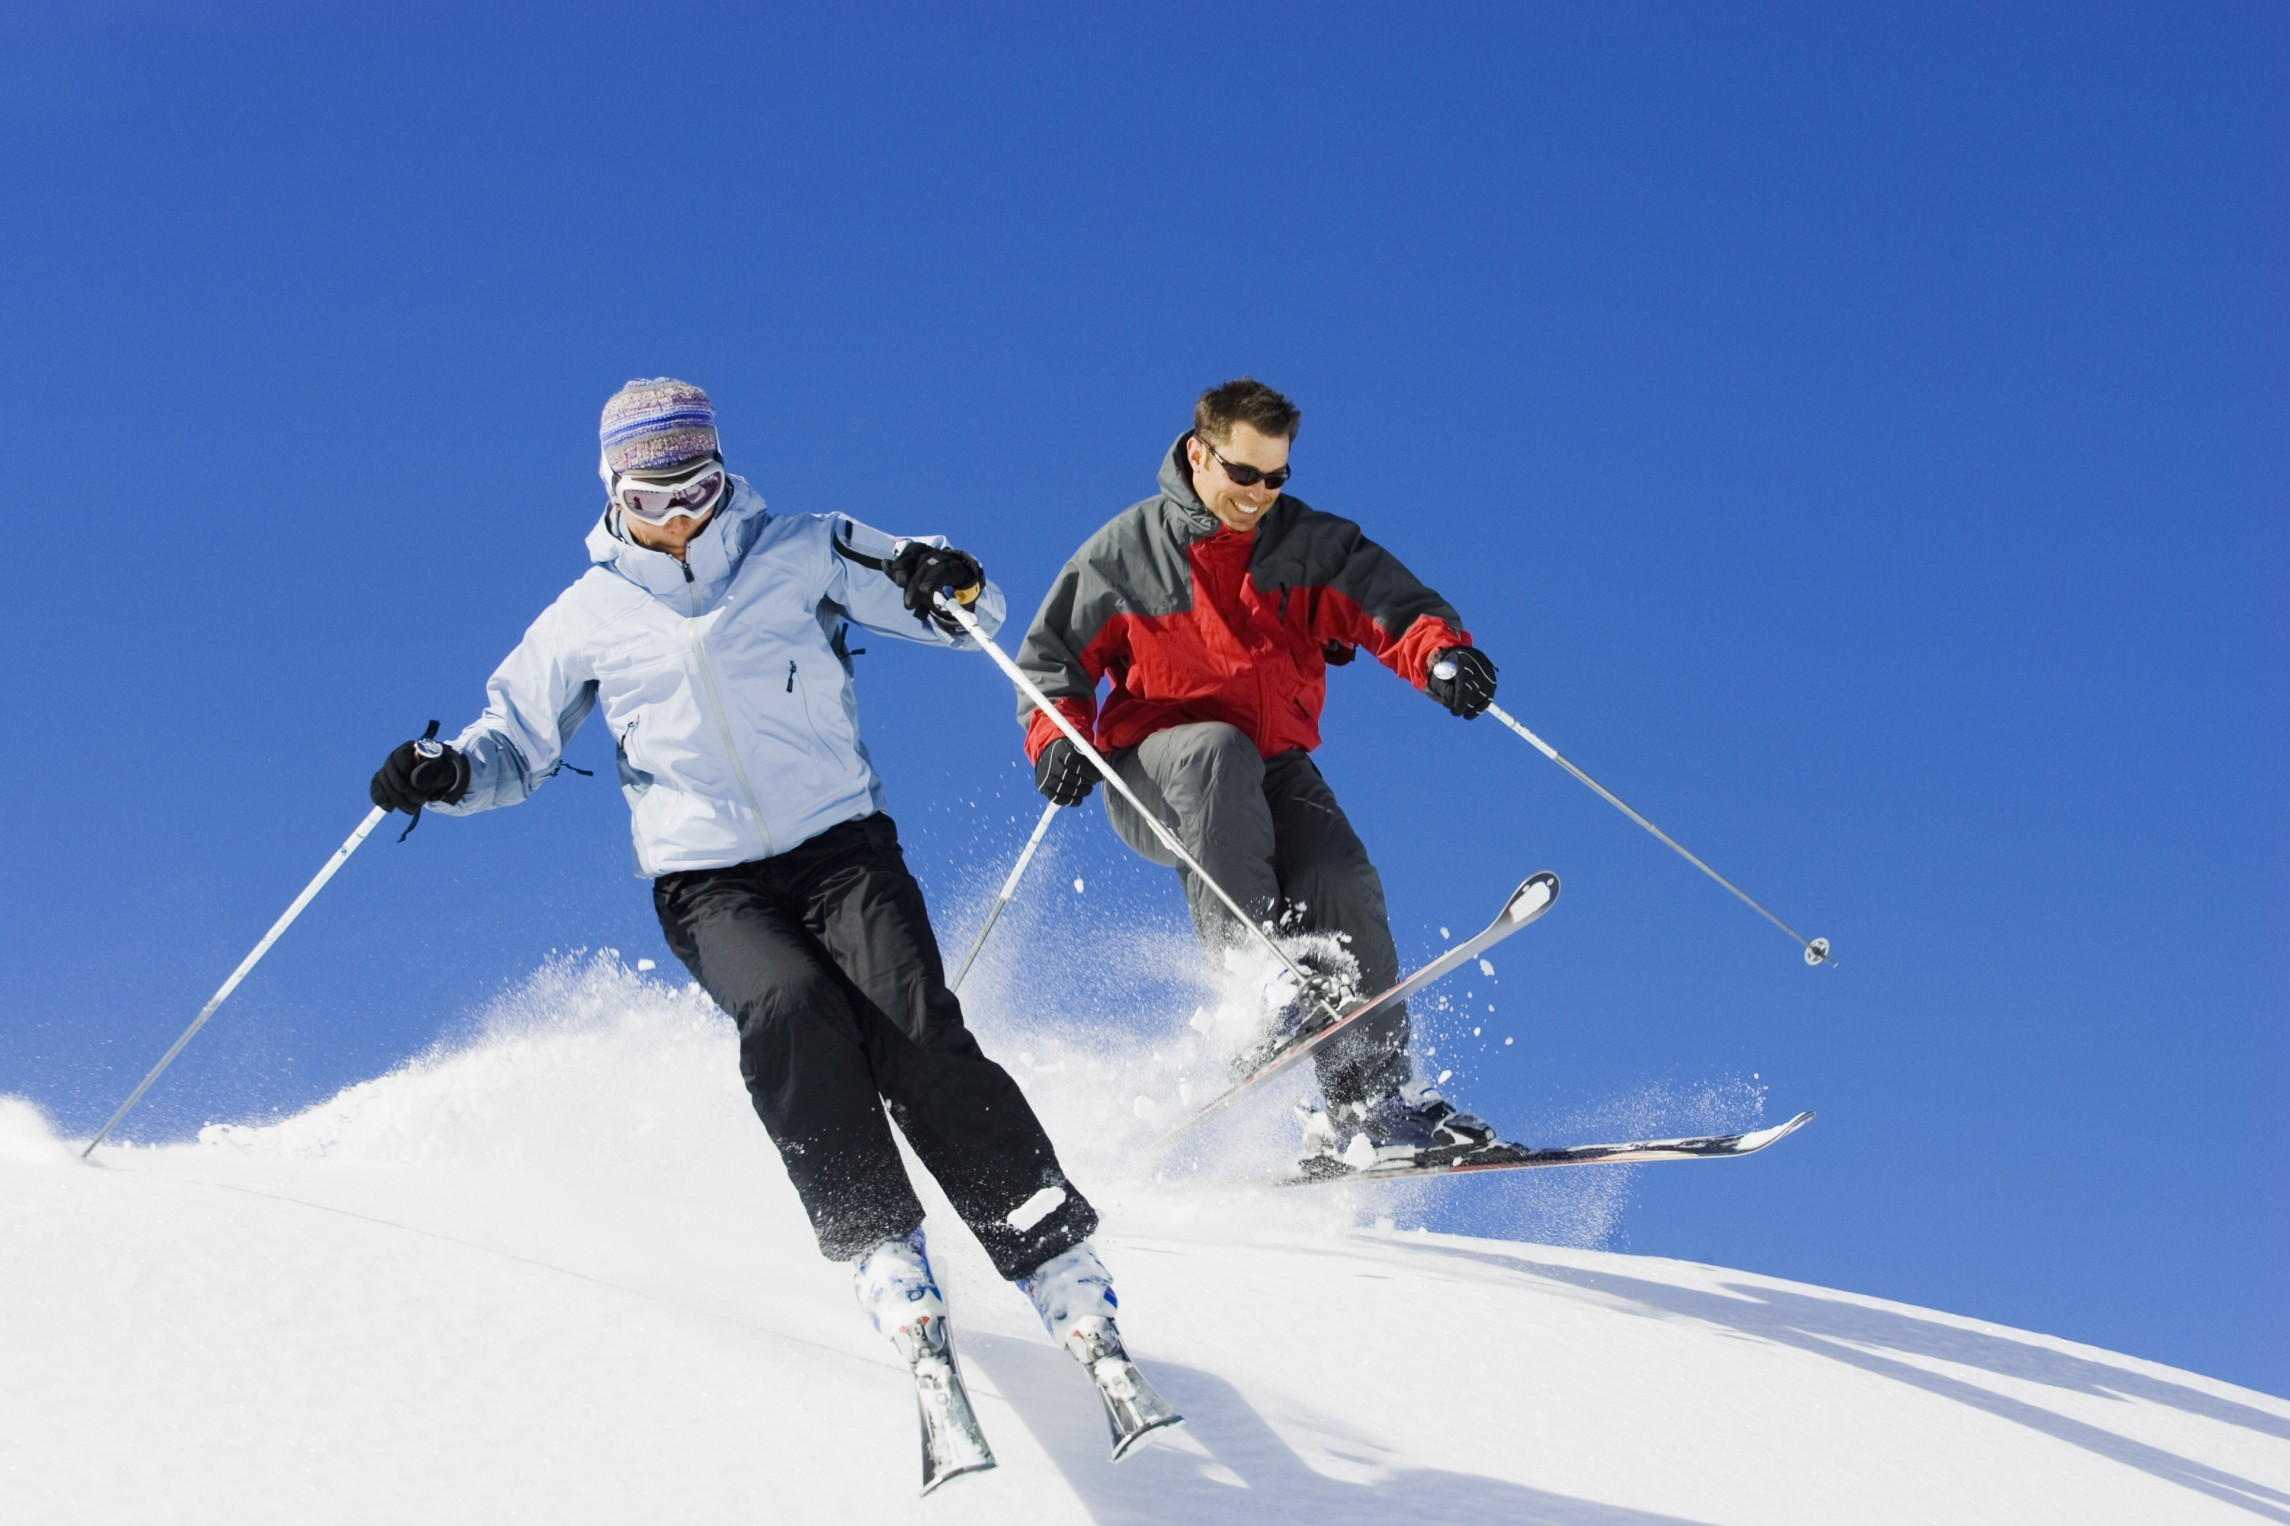 Couple downhill skiing